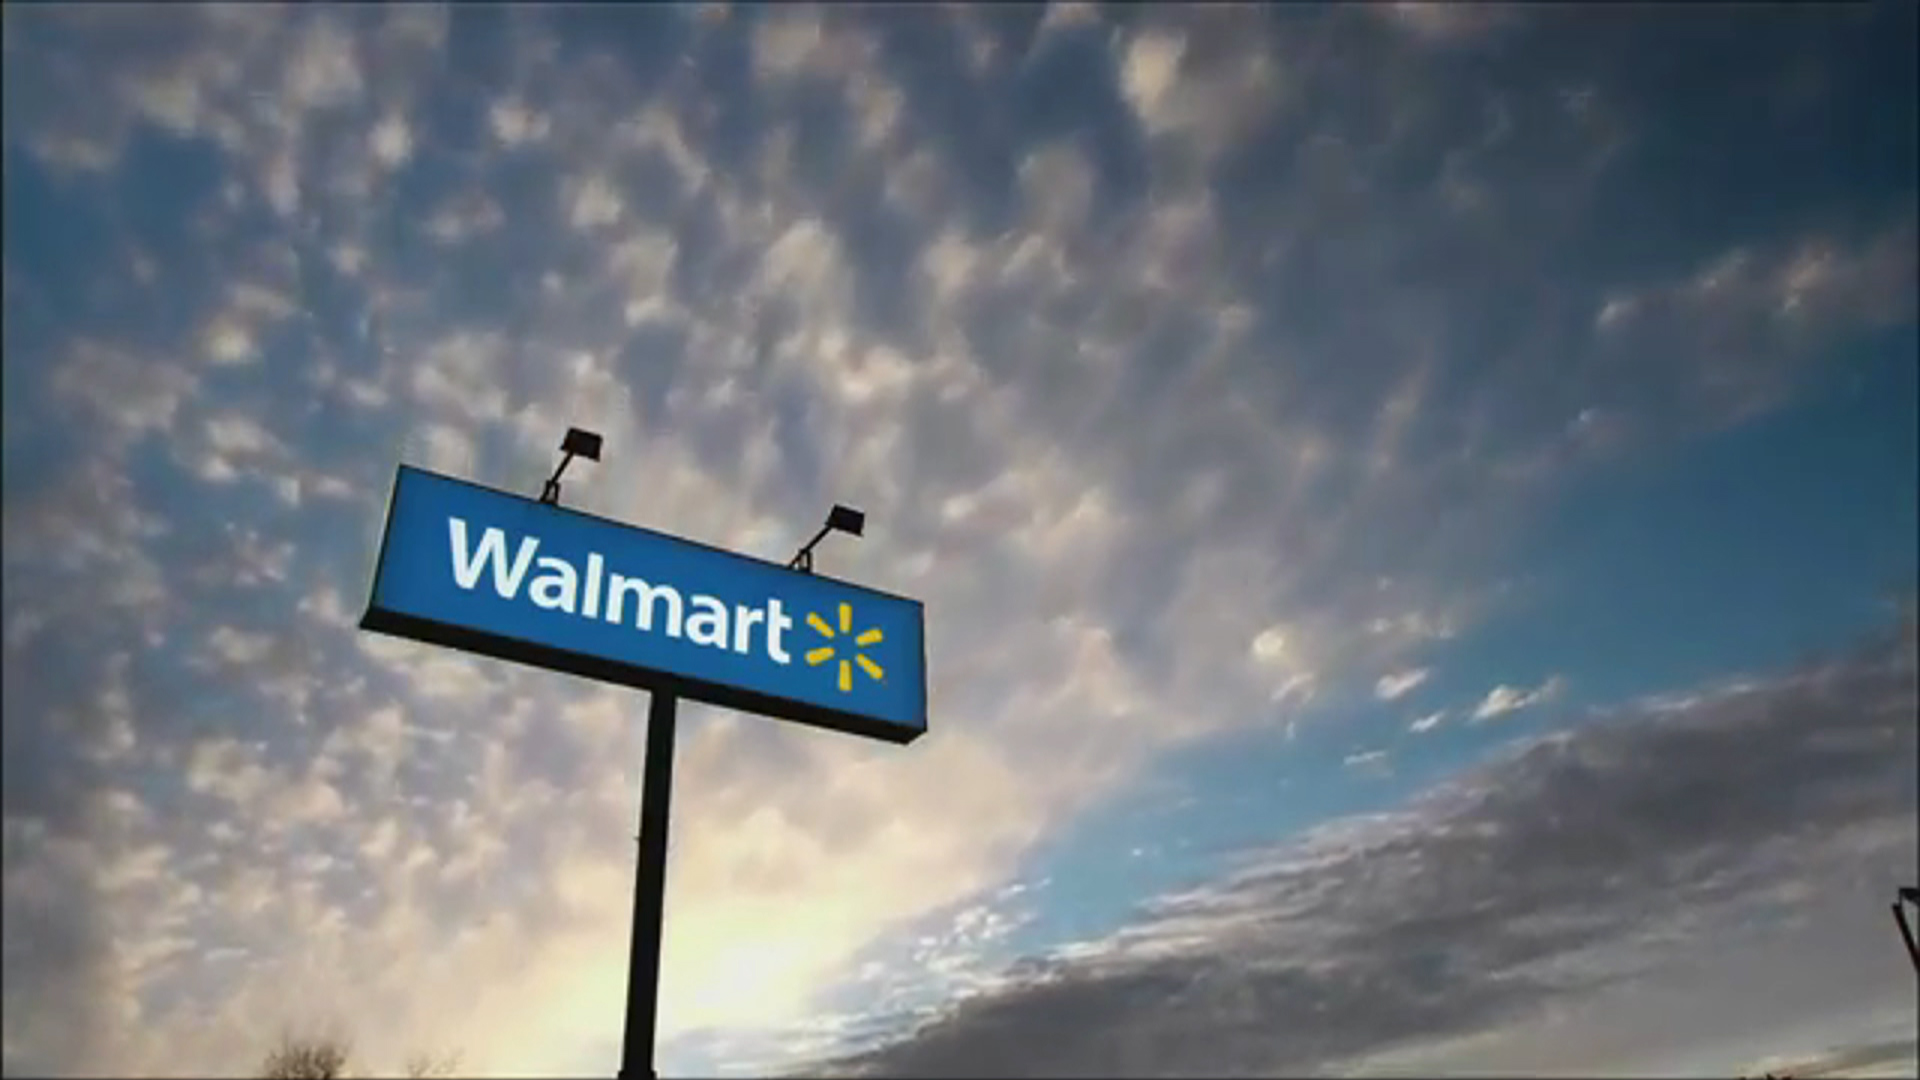 Wal-Mart Scammed into Selling PlayStation 4 for $90